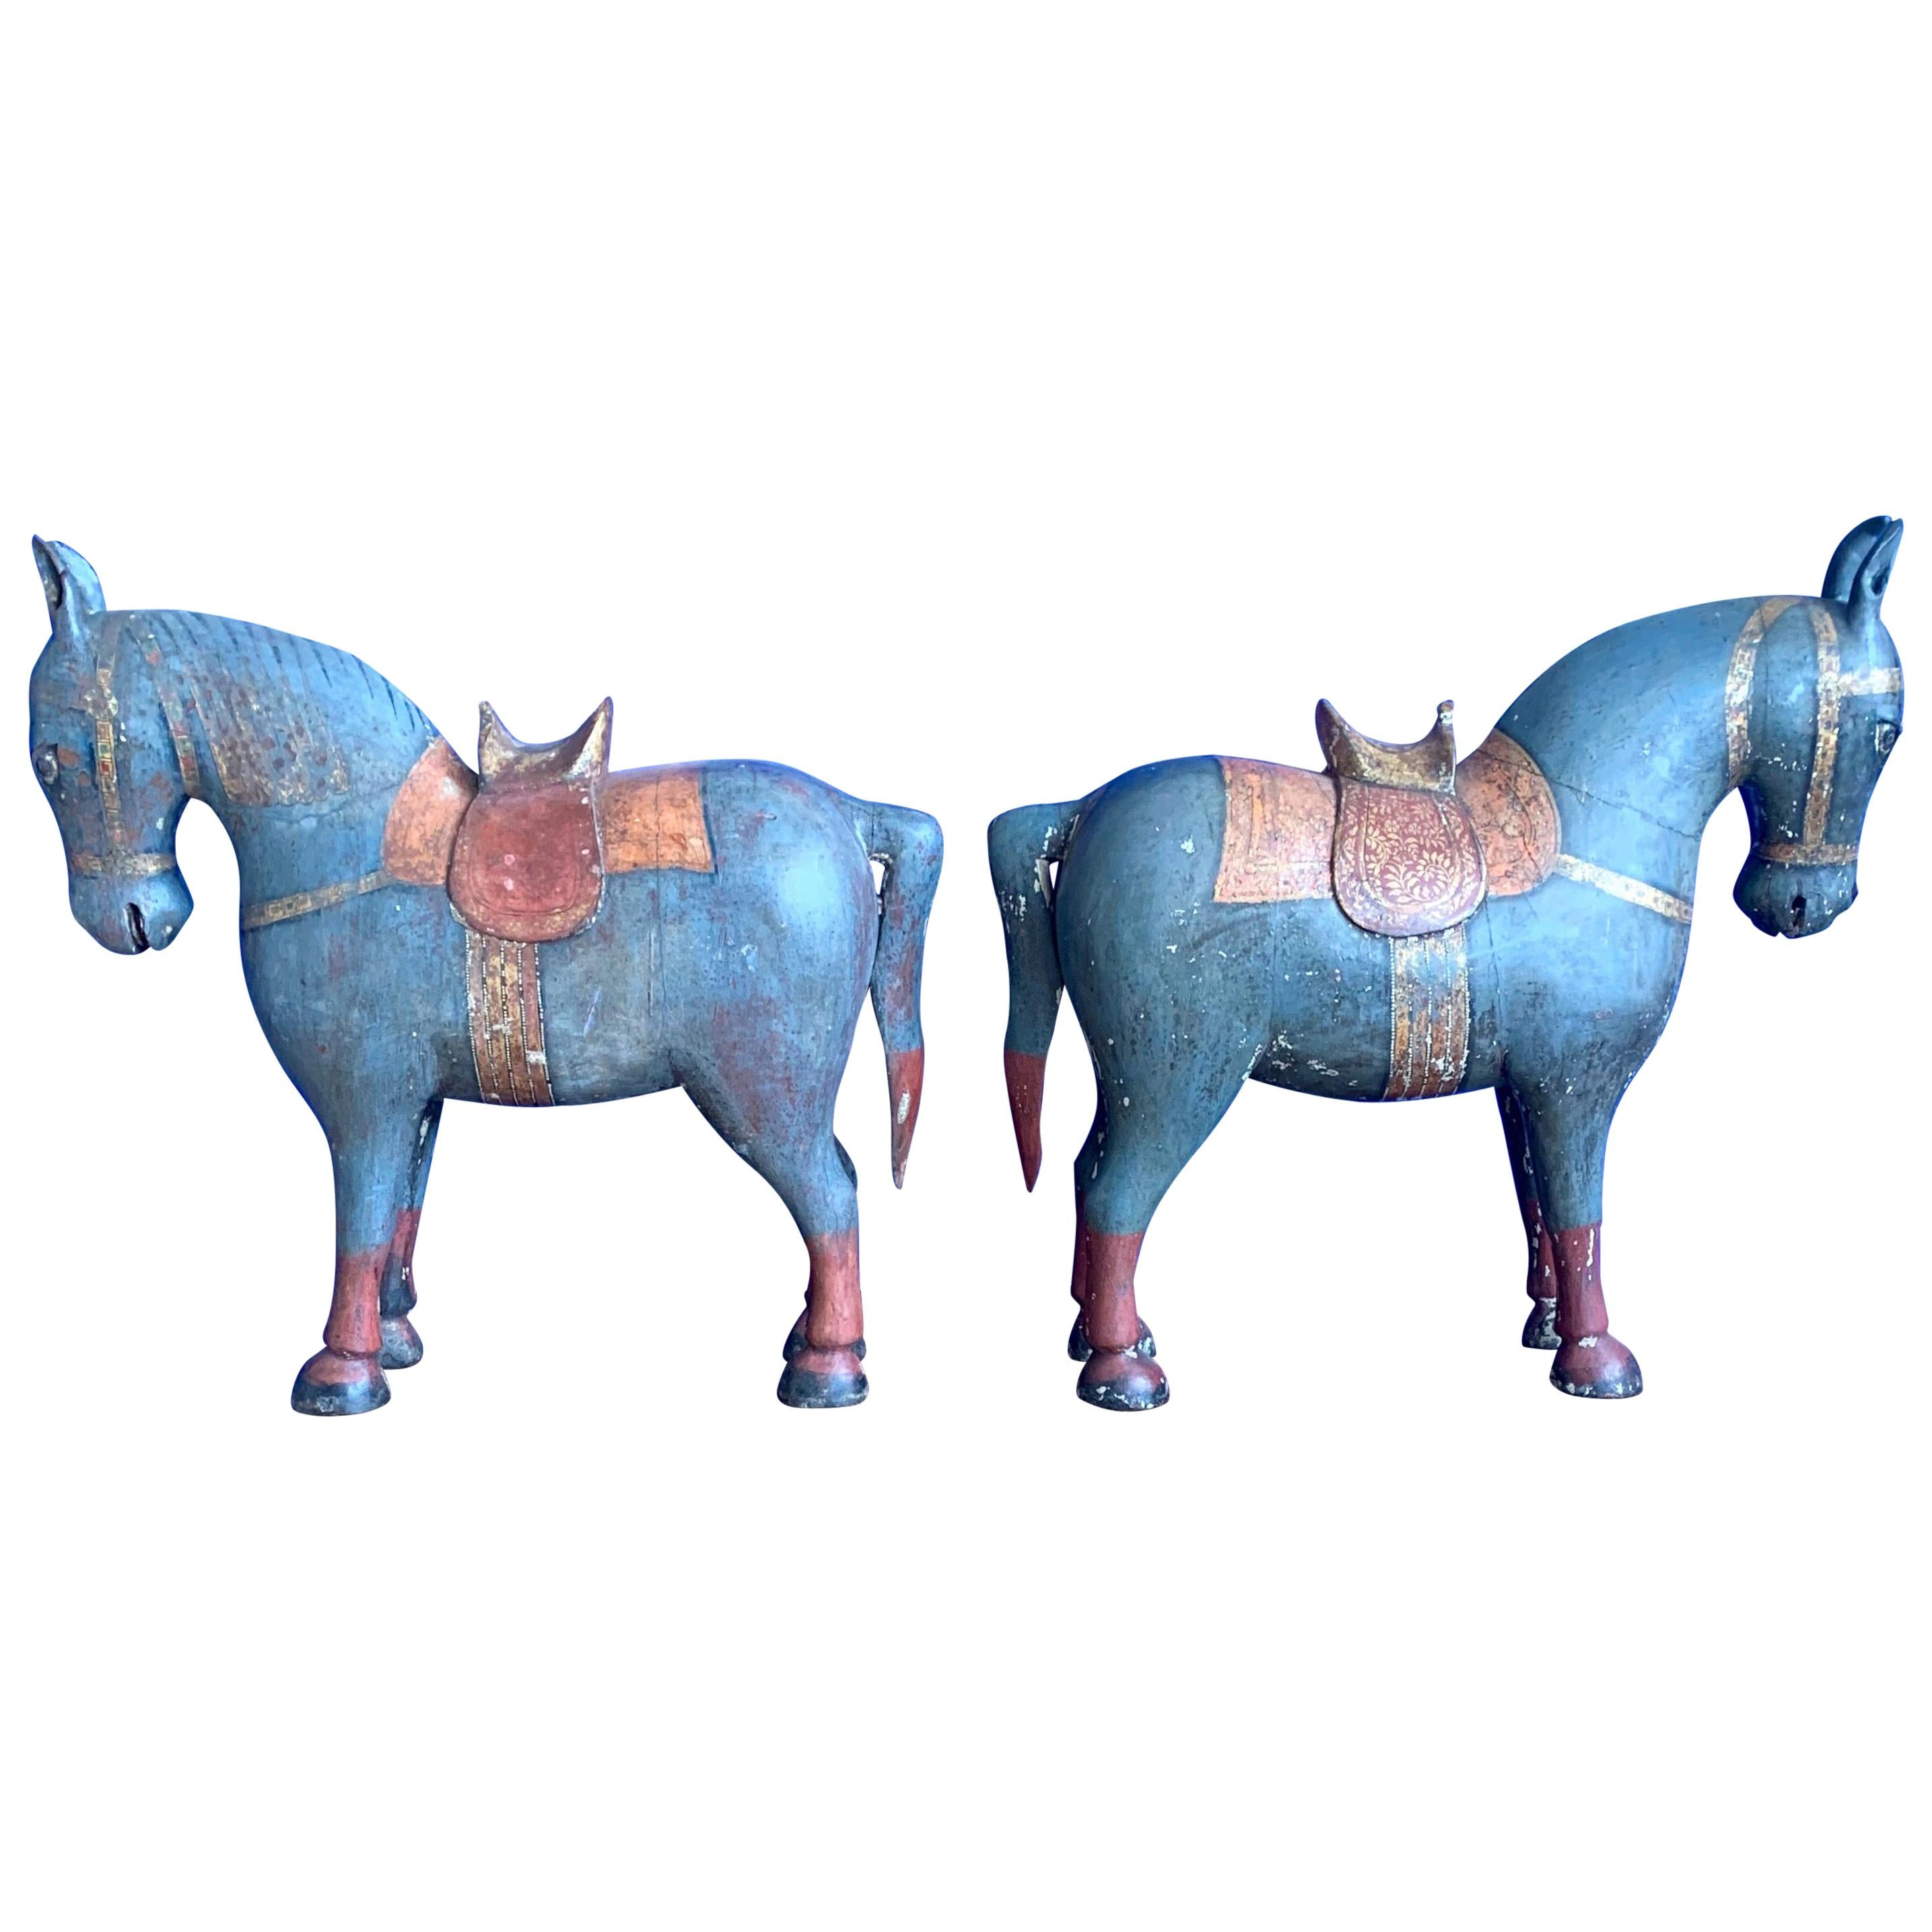 Antique, Rare & Decorative Pair of Hand Carved and Hand Painted Horse Sculptures